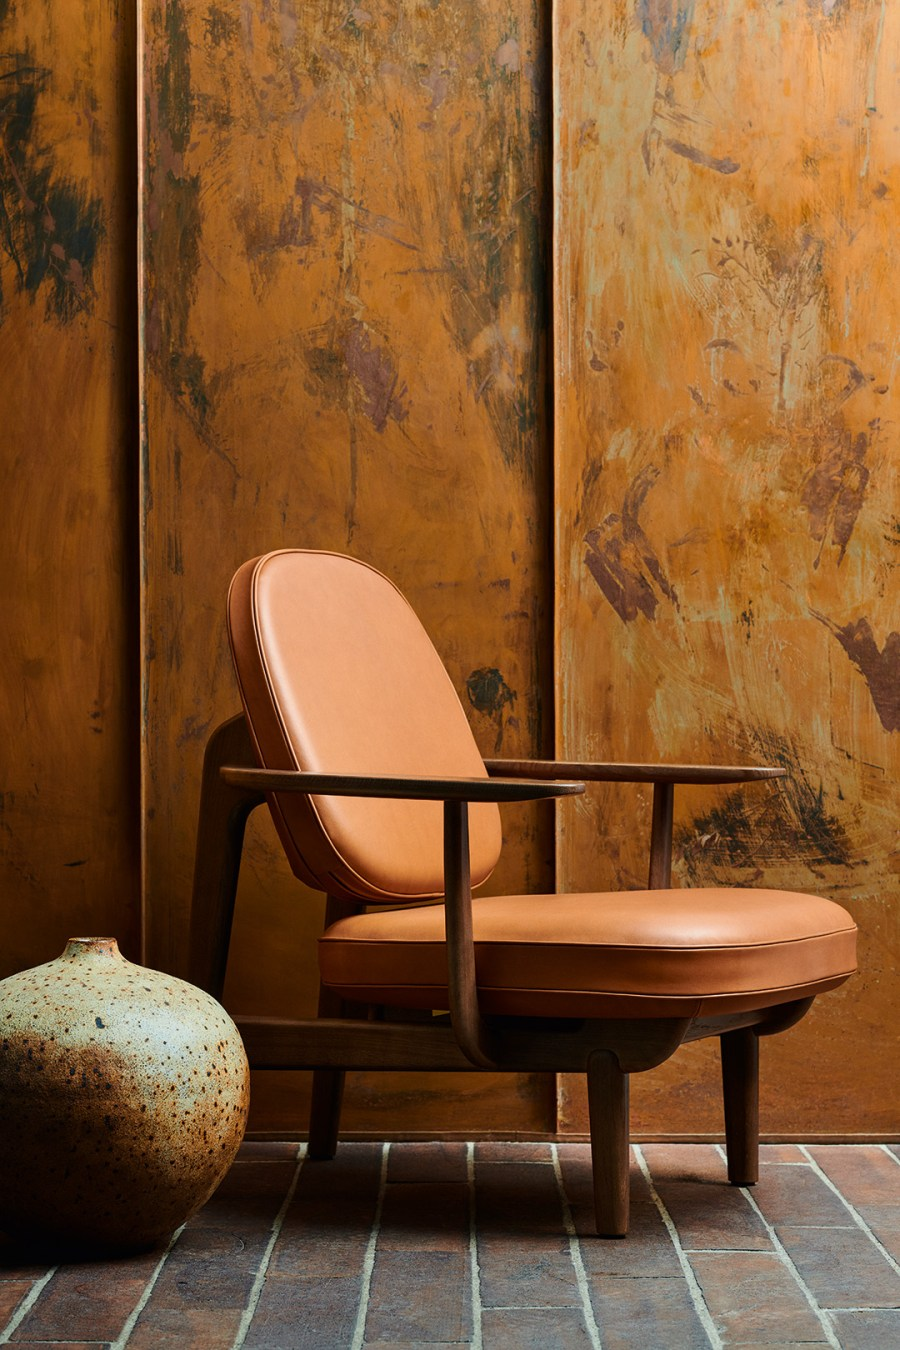 JH97 chair by Jaime Hayon for Fritz Hansen. My favourite minimalist furniture launches at Milan Design Week 2019 – part 2